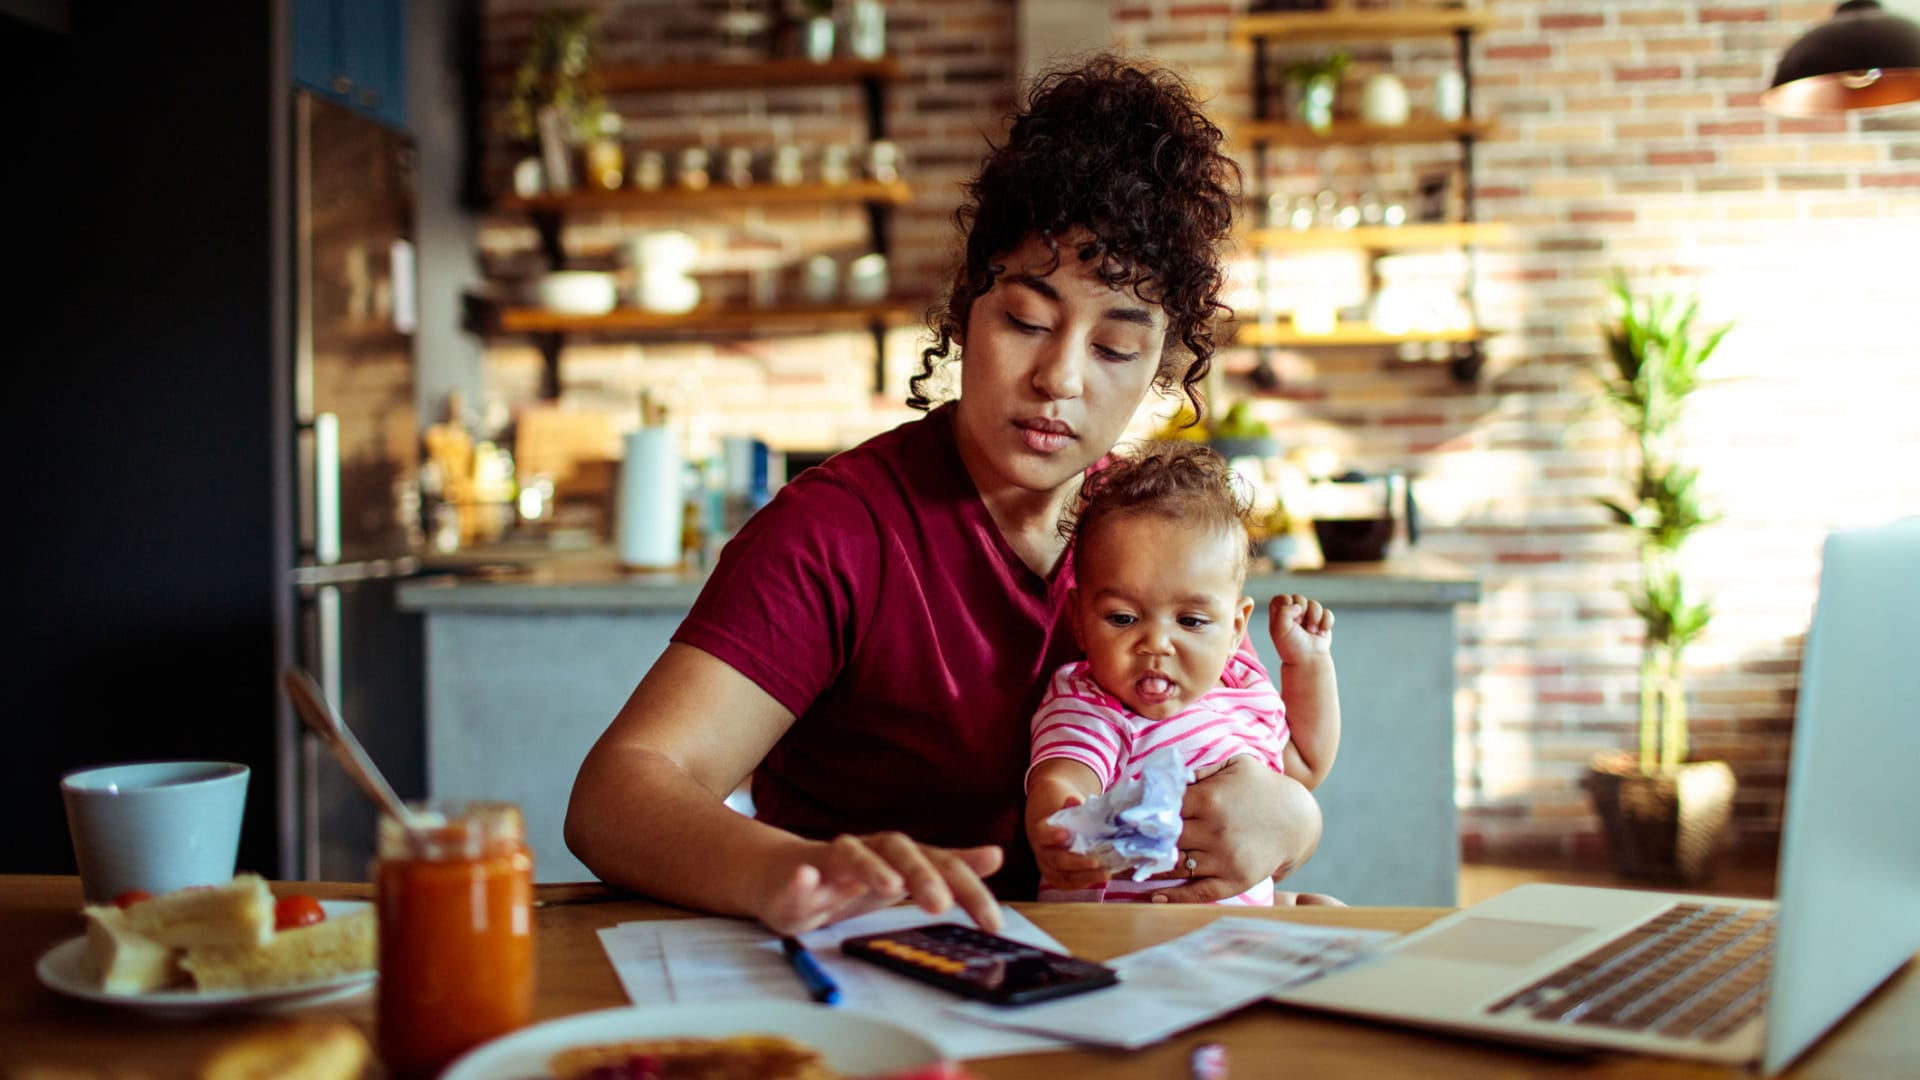 A New Survey Shows 4 Ways the Pandemic Has Affected Working Parents (and What Employers Can Do to Help)